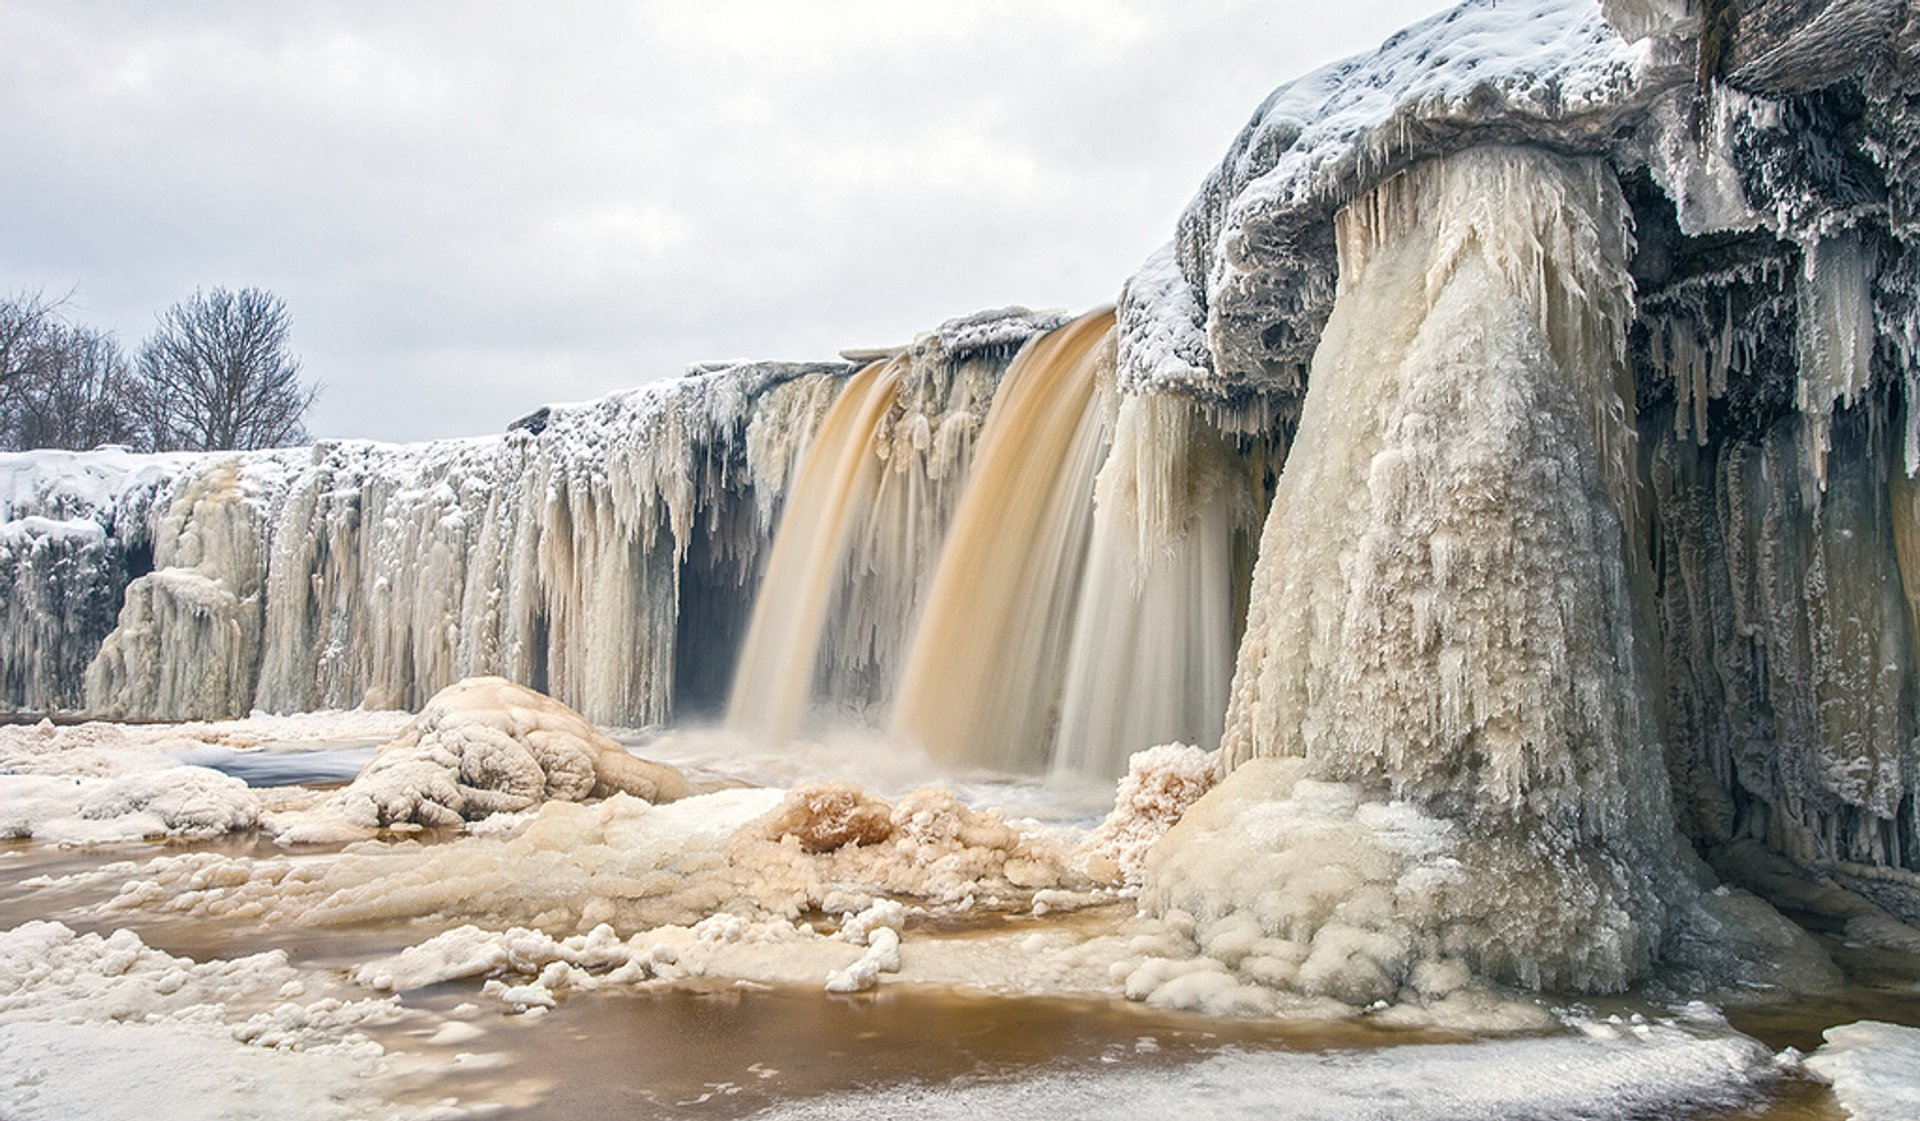 Frozen Waterfalls in Estonia 2020 - Best Time